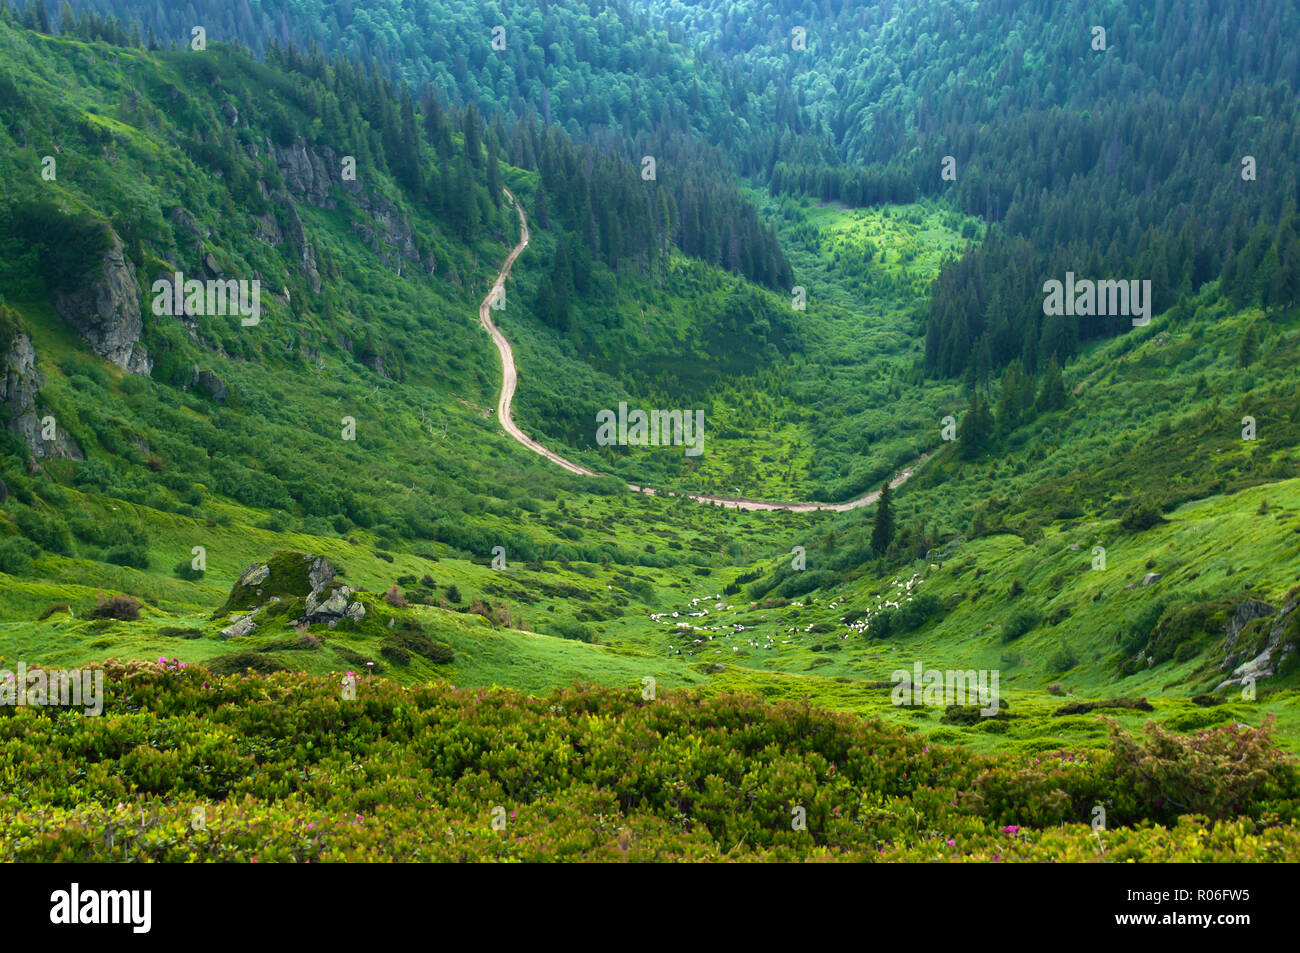 Winding road in the valley among majestic green rugged hills covered in lush grass, bushes, forest. Herd of sheep grazing in the distance. Summer day  - Stock Image